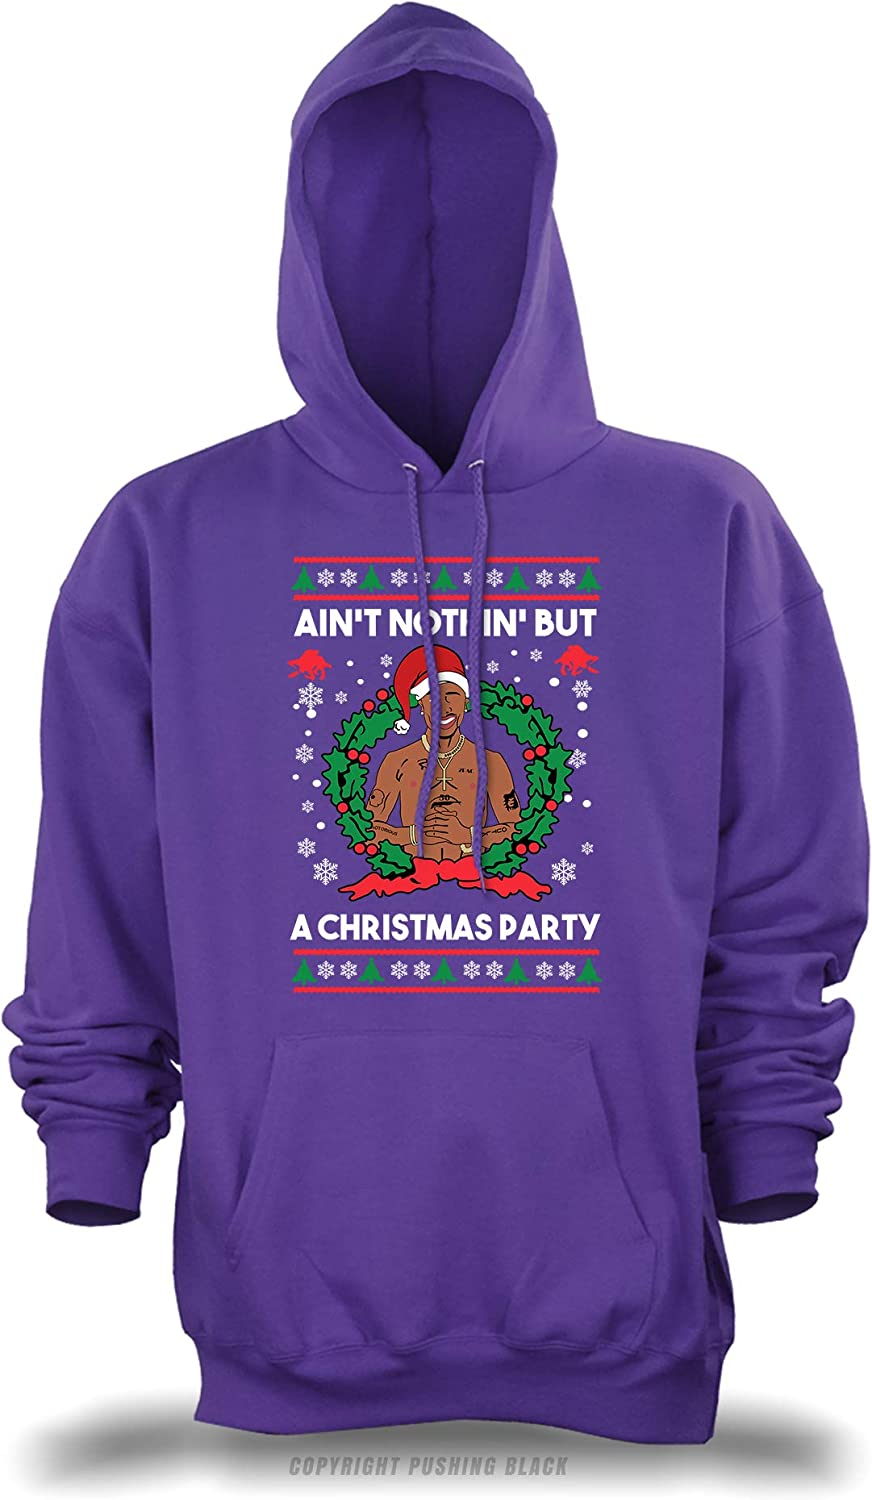 PUSHING BLACK Aint Nothing But a Christmas Party Unisex Pullover Hoodie , Small Purple Gildan